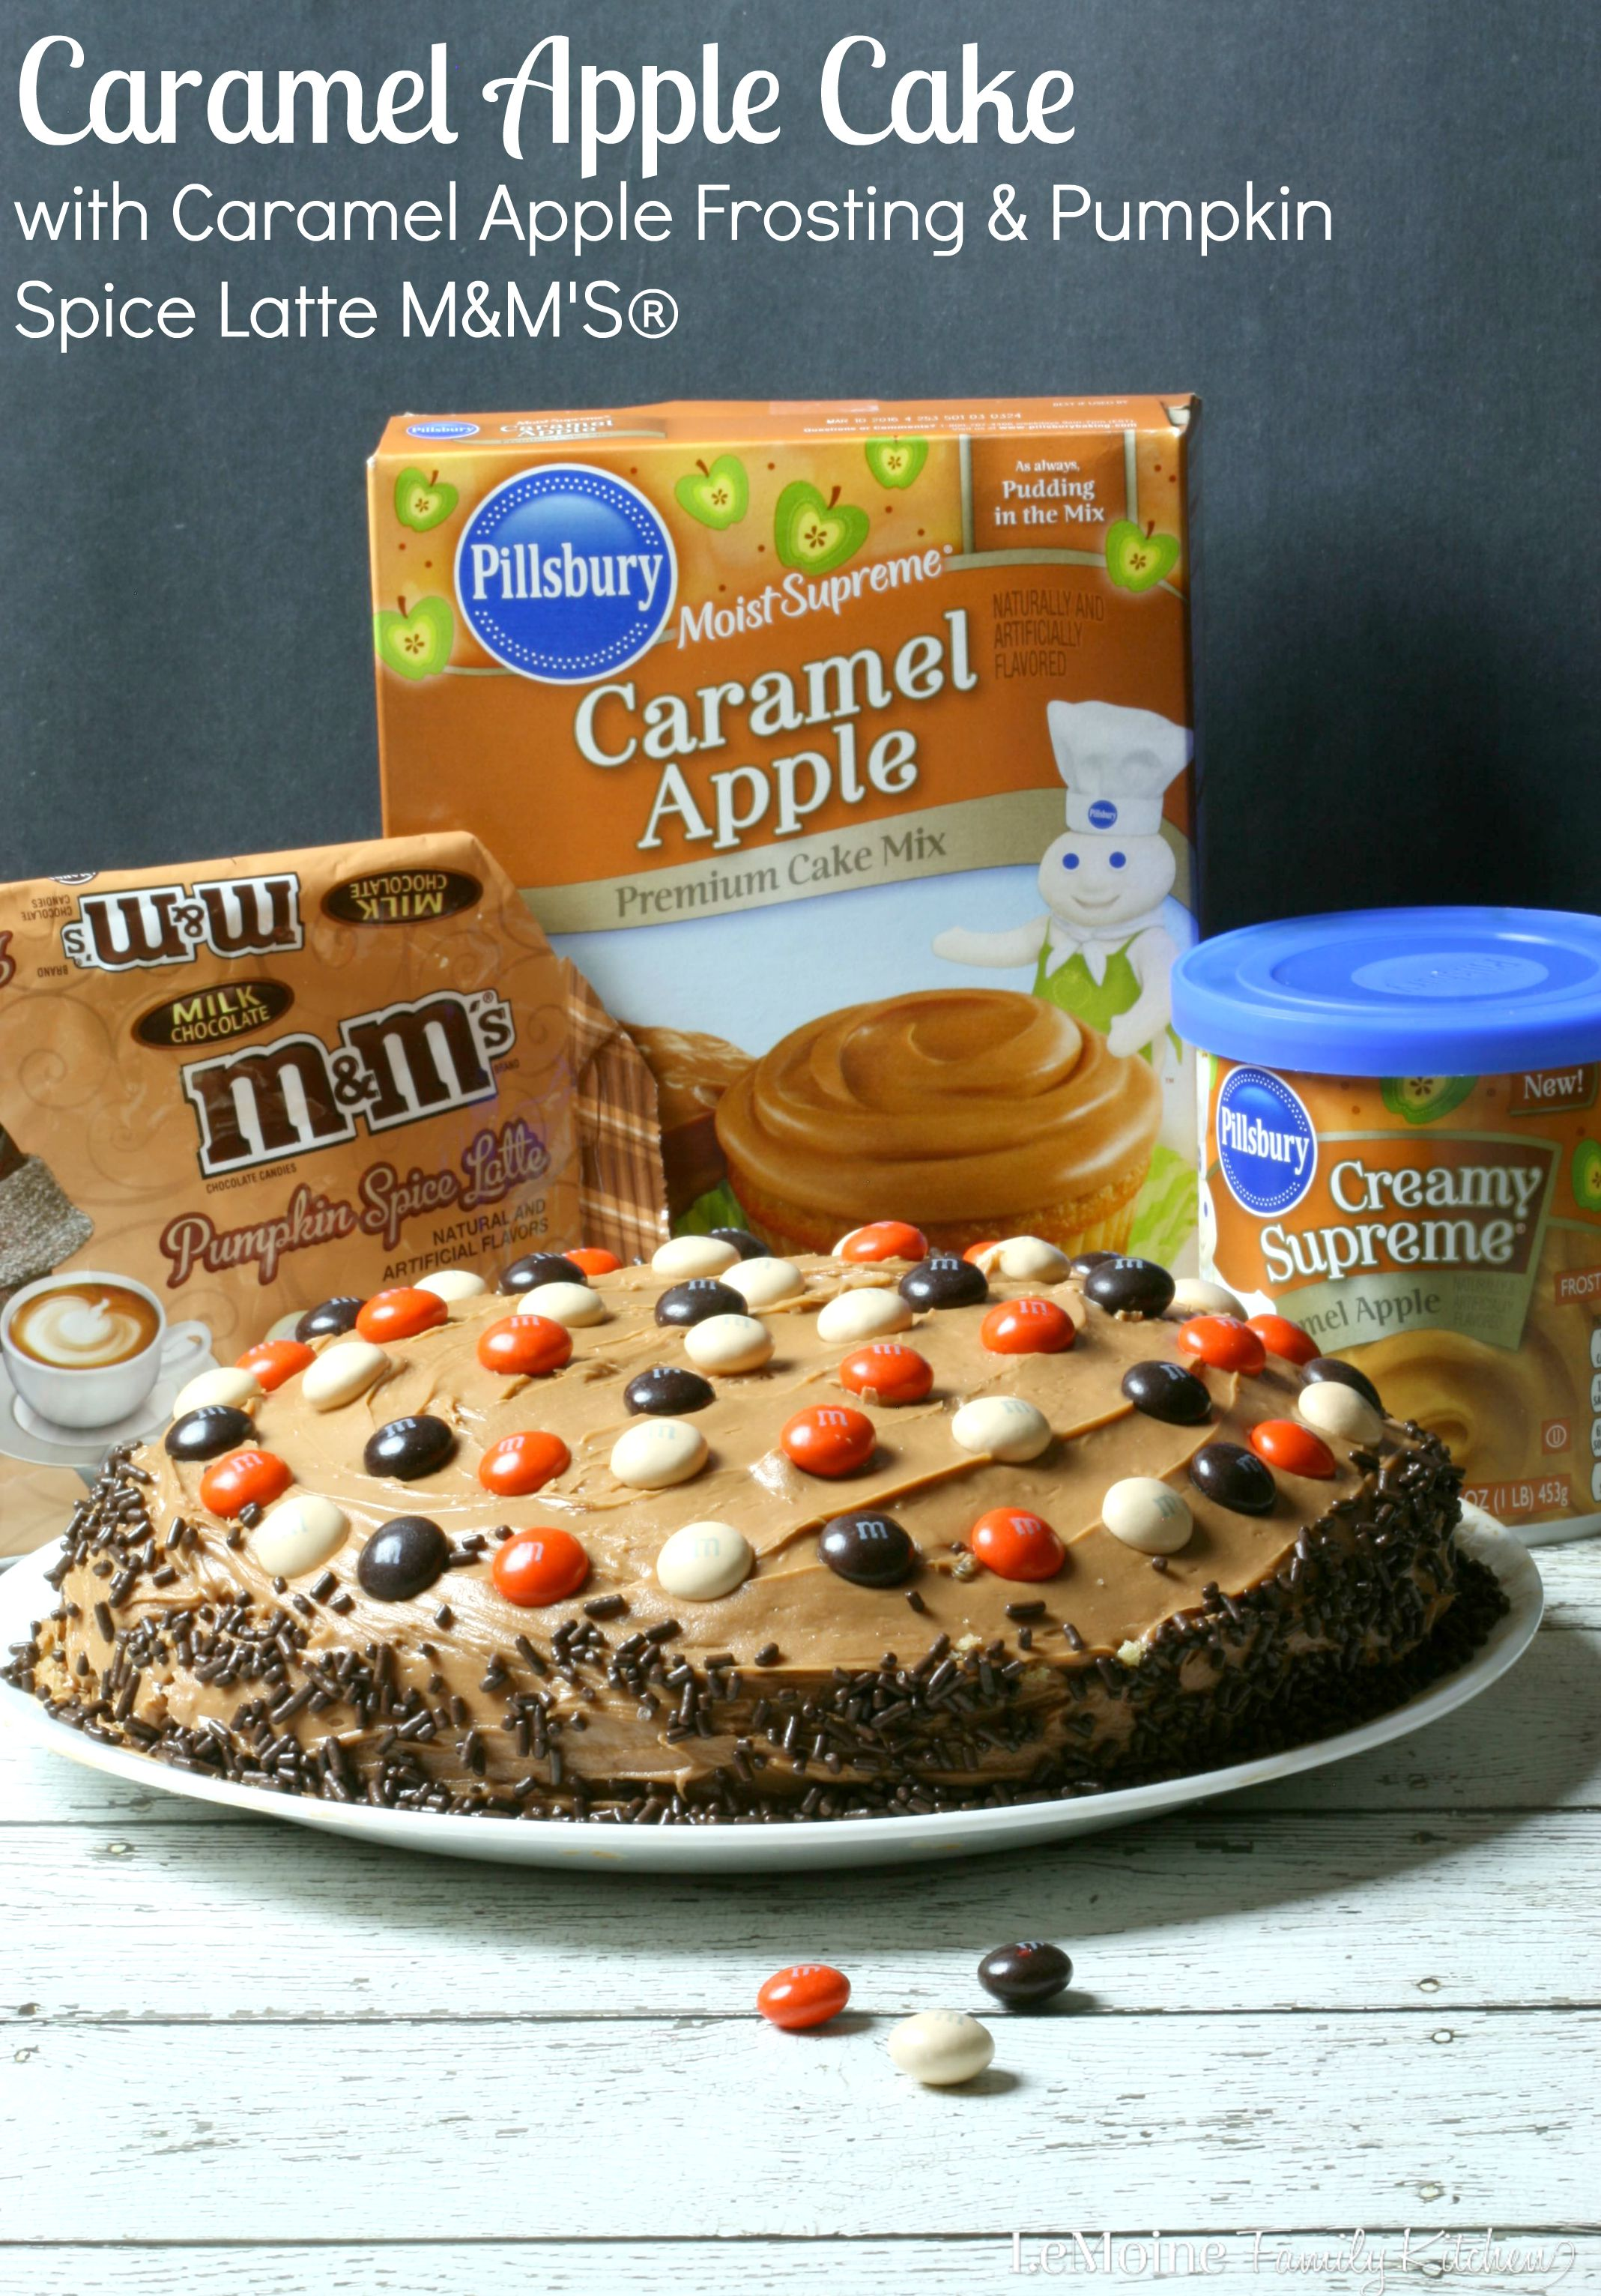 Caramel Apple Cake with Caramel Apple Frosting & Pumpkin Spice Latte M&M'S®